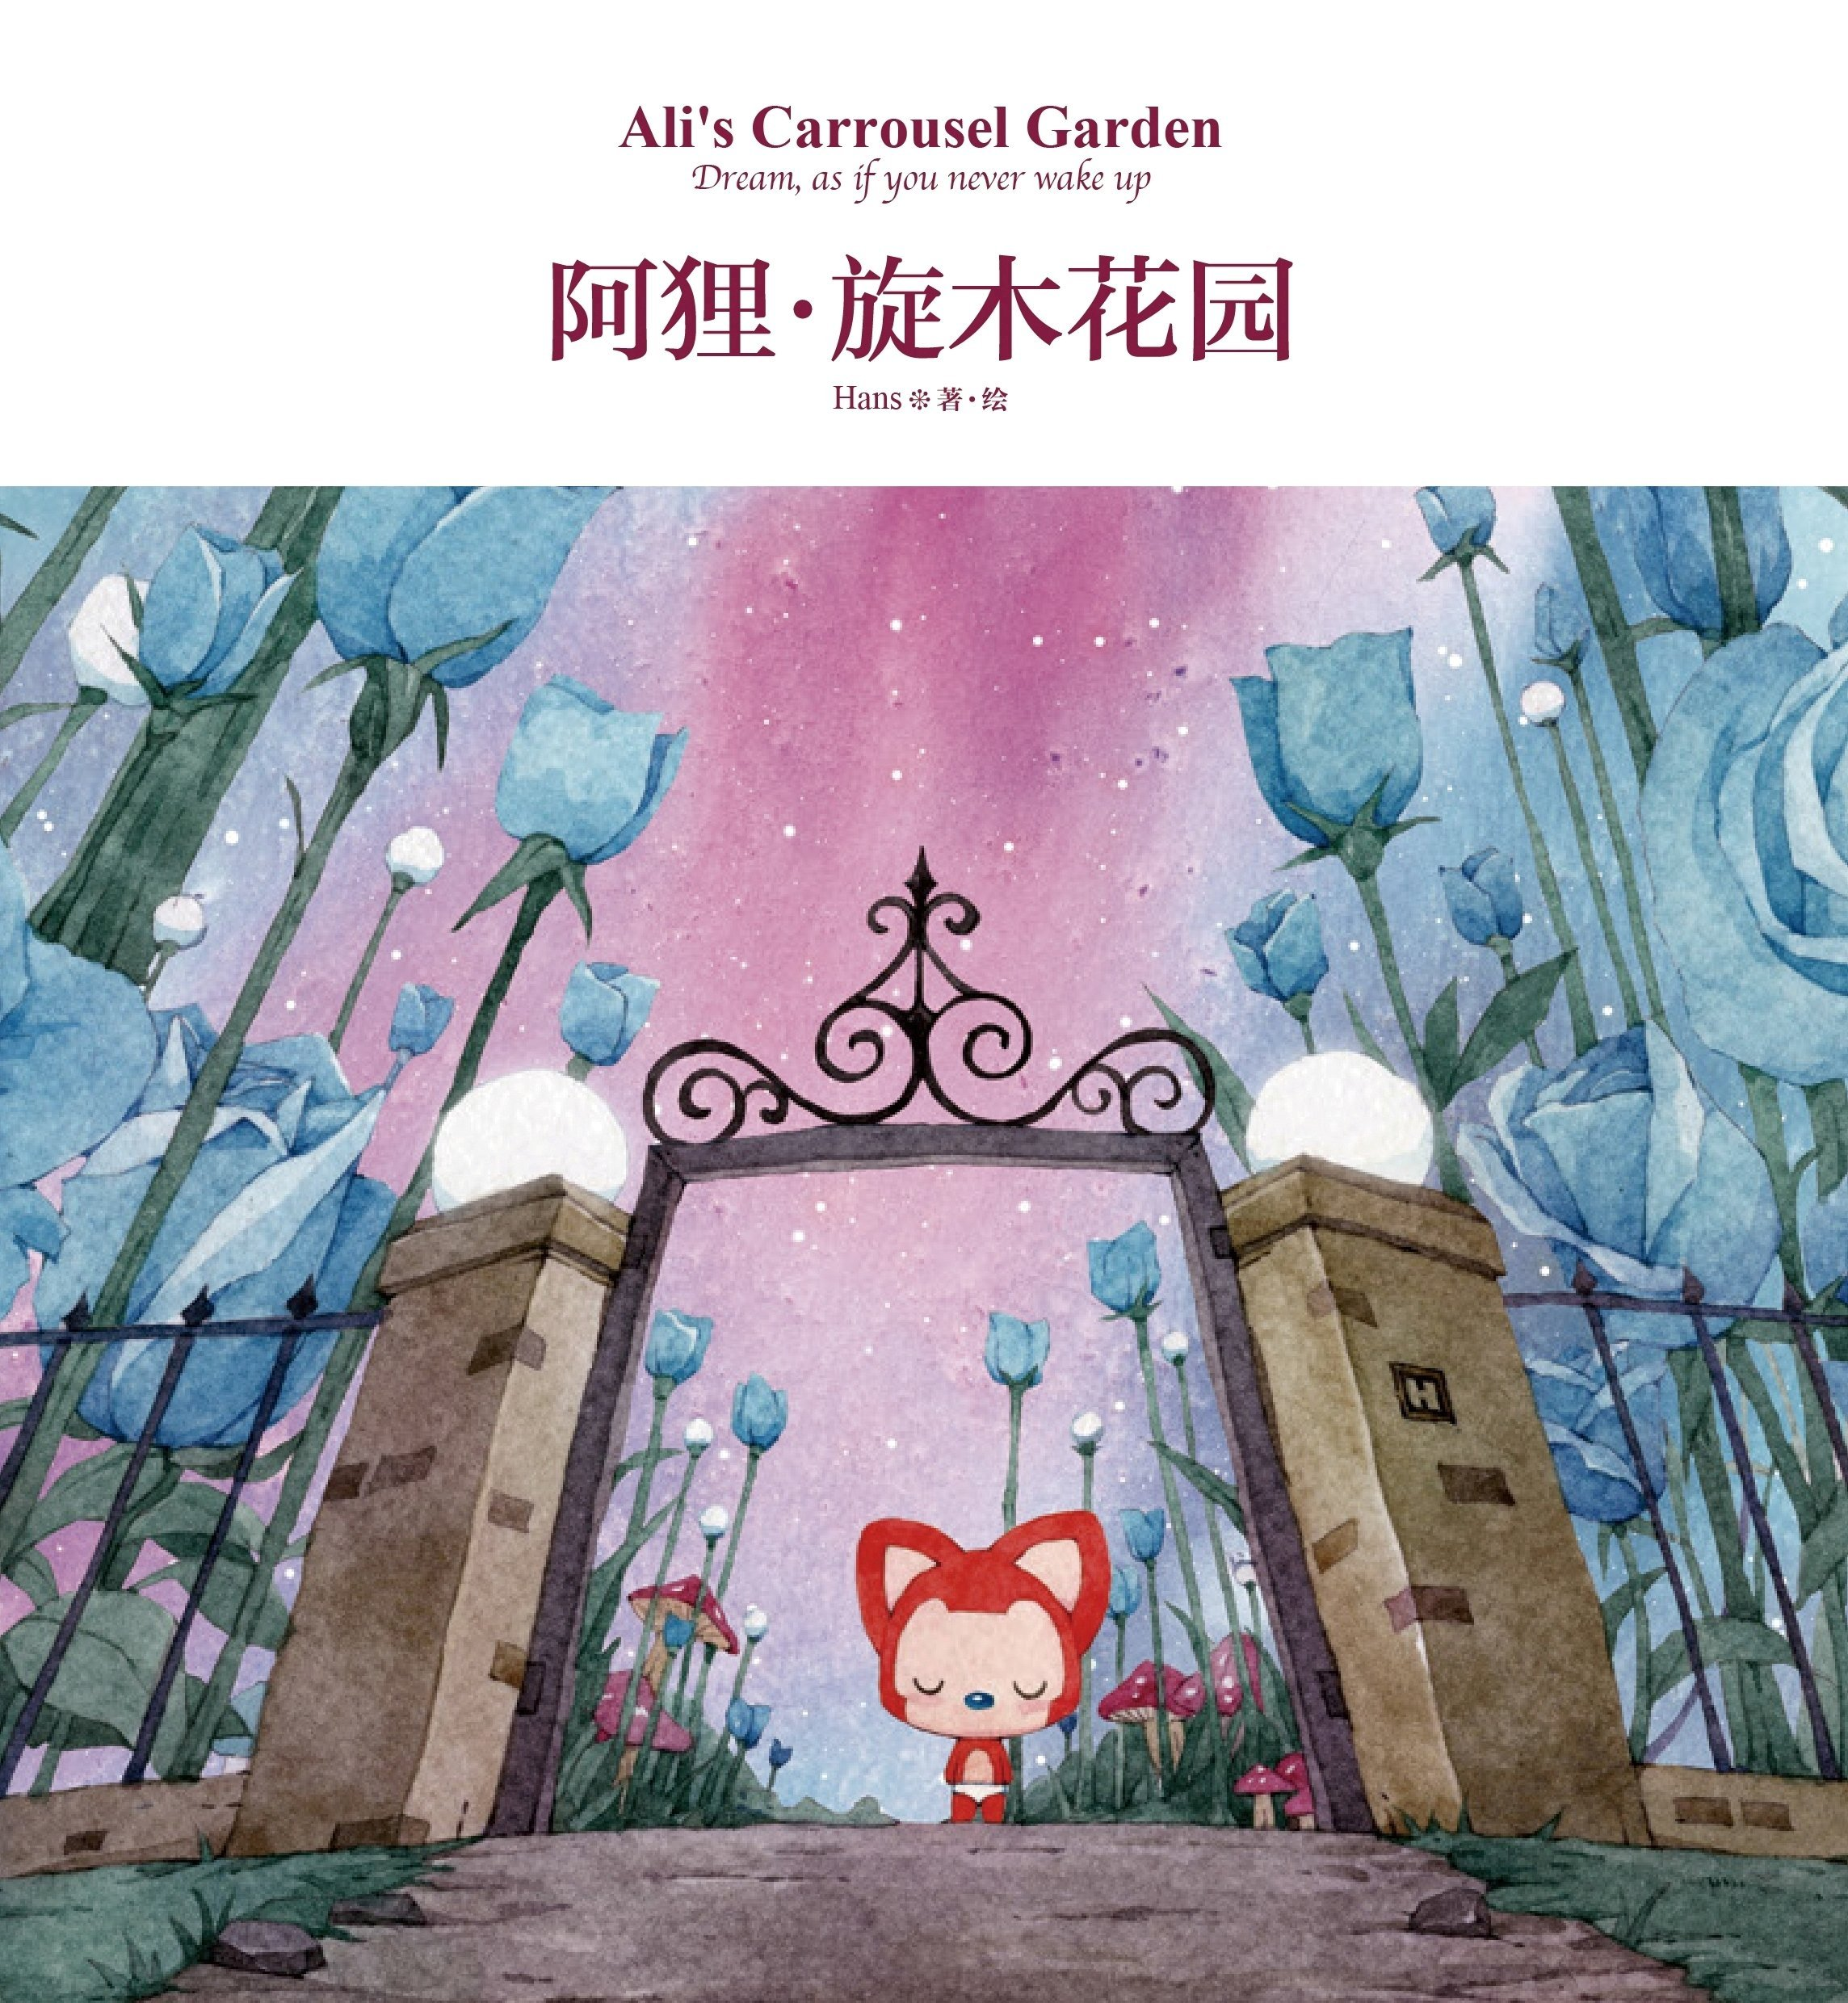 Download Ali's Carrousel Garden Dream,as if you never wake up (Chinese Edition) pdf